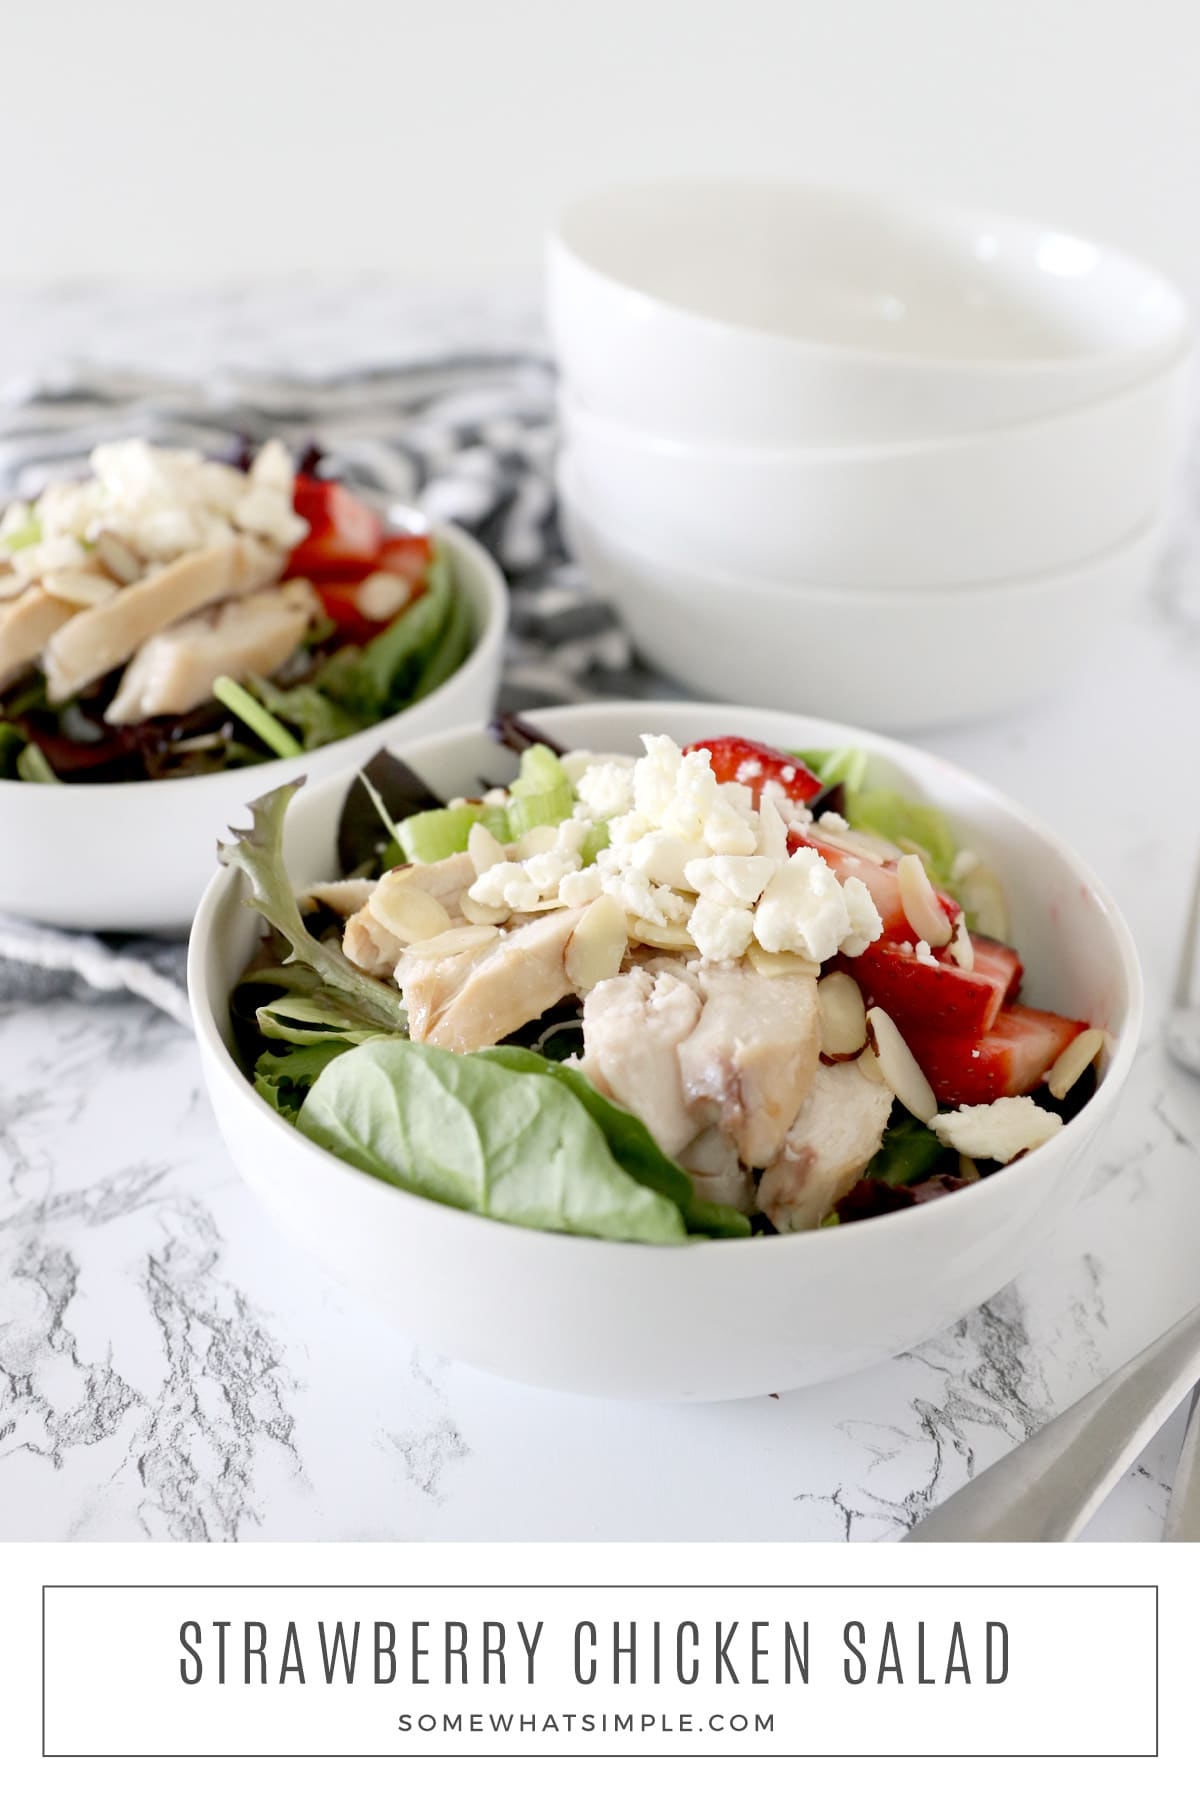 This strawberry chicken salad is a fresh, light and healthy meal you can enjoy all summer long that takes only minutes to prepare. via @somewhatsimple